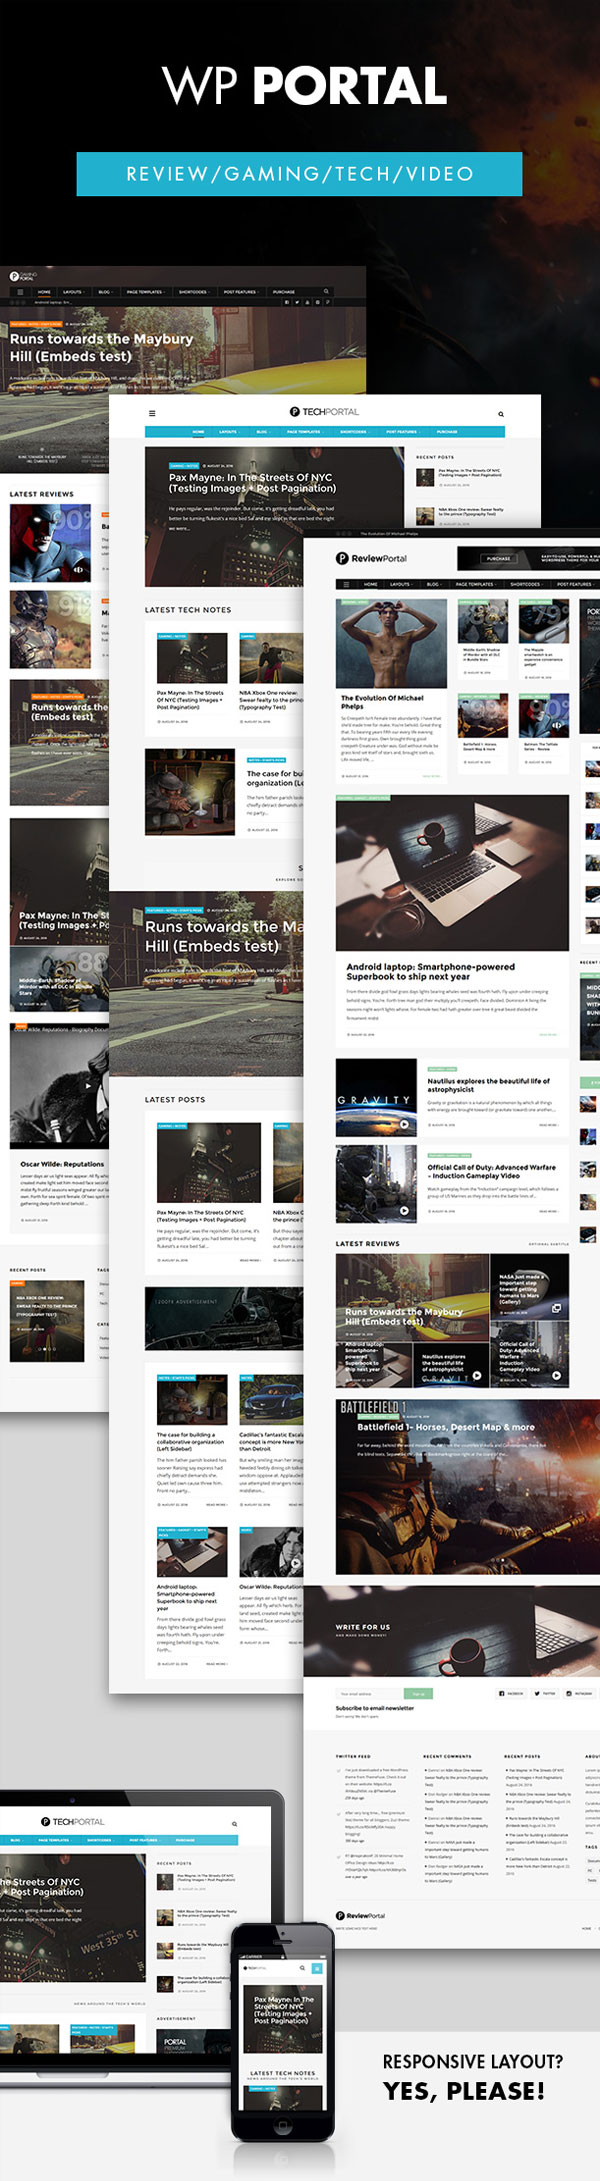 wp-portal-gaming-technology-viral-blog-magazine-wordpress-theme